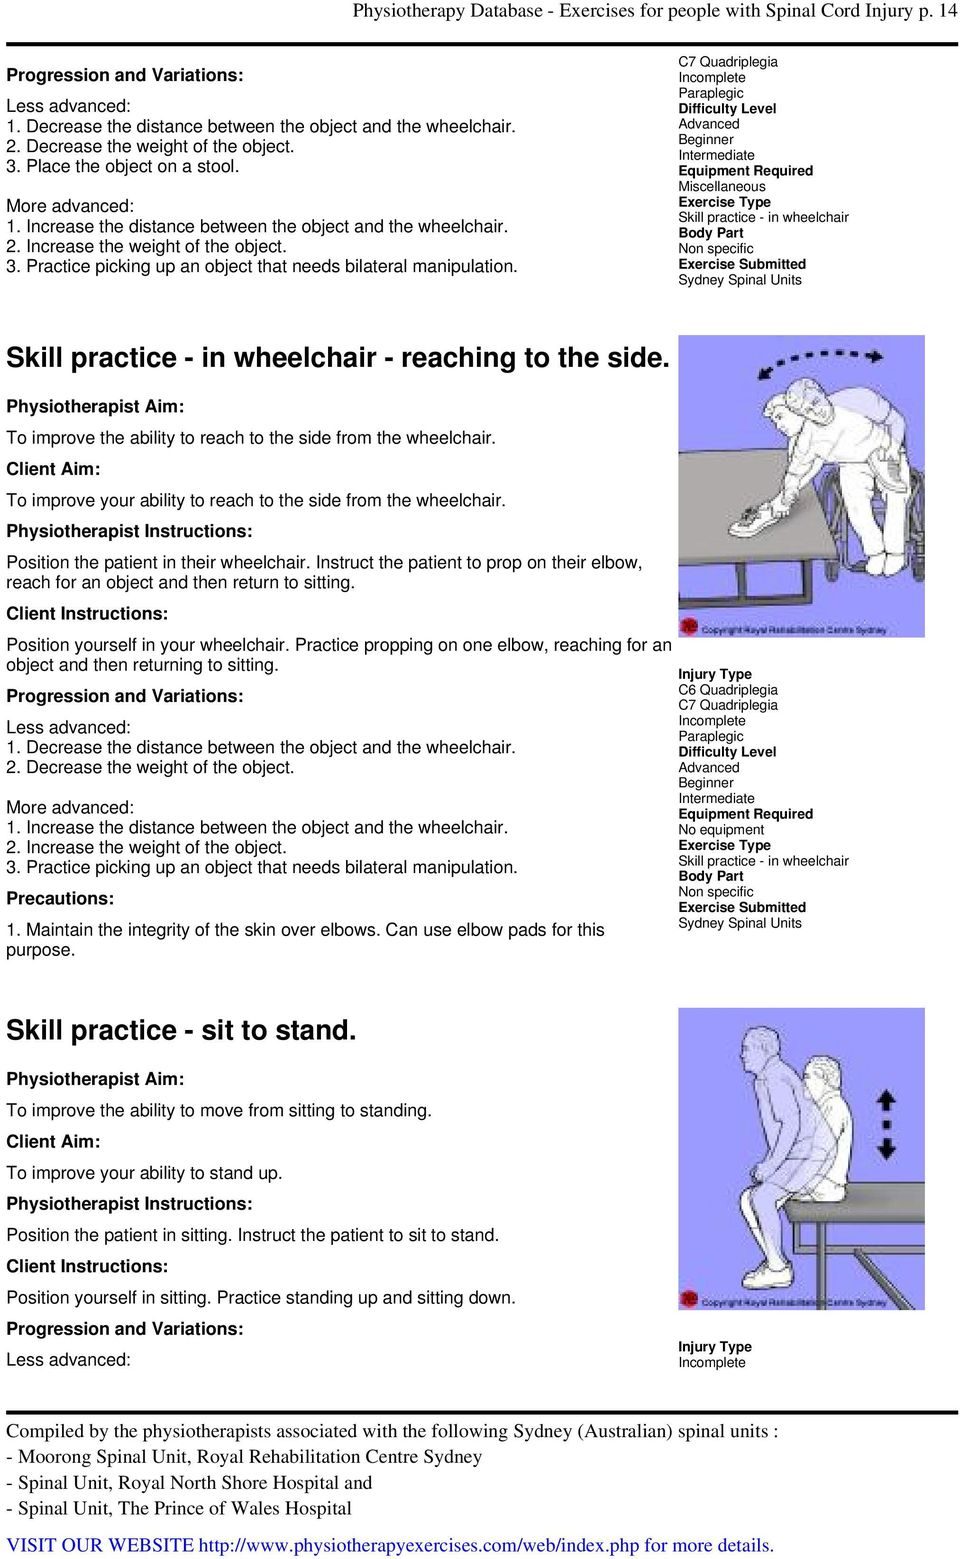 Miscellaneous Skill practice - in wheelchair Non specific Skill practice - in wheelchair - reaching to the side. To improve the ability to reach to the side from the wheelchair.